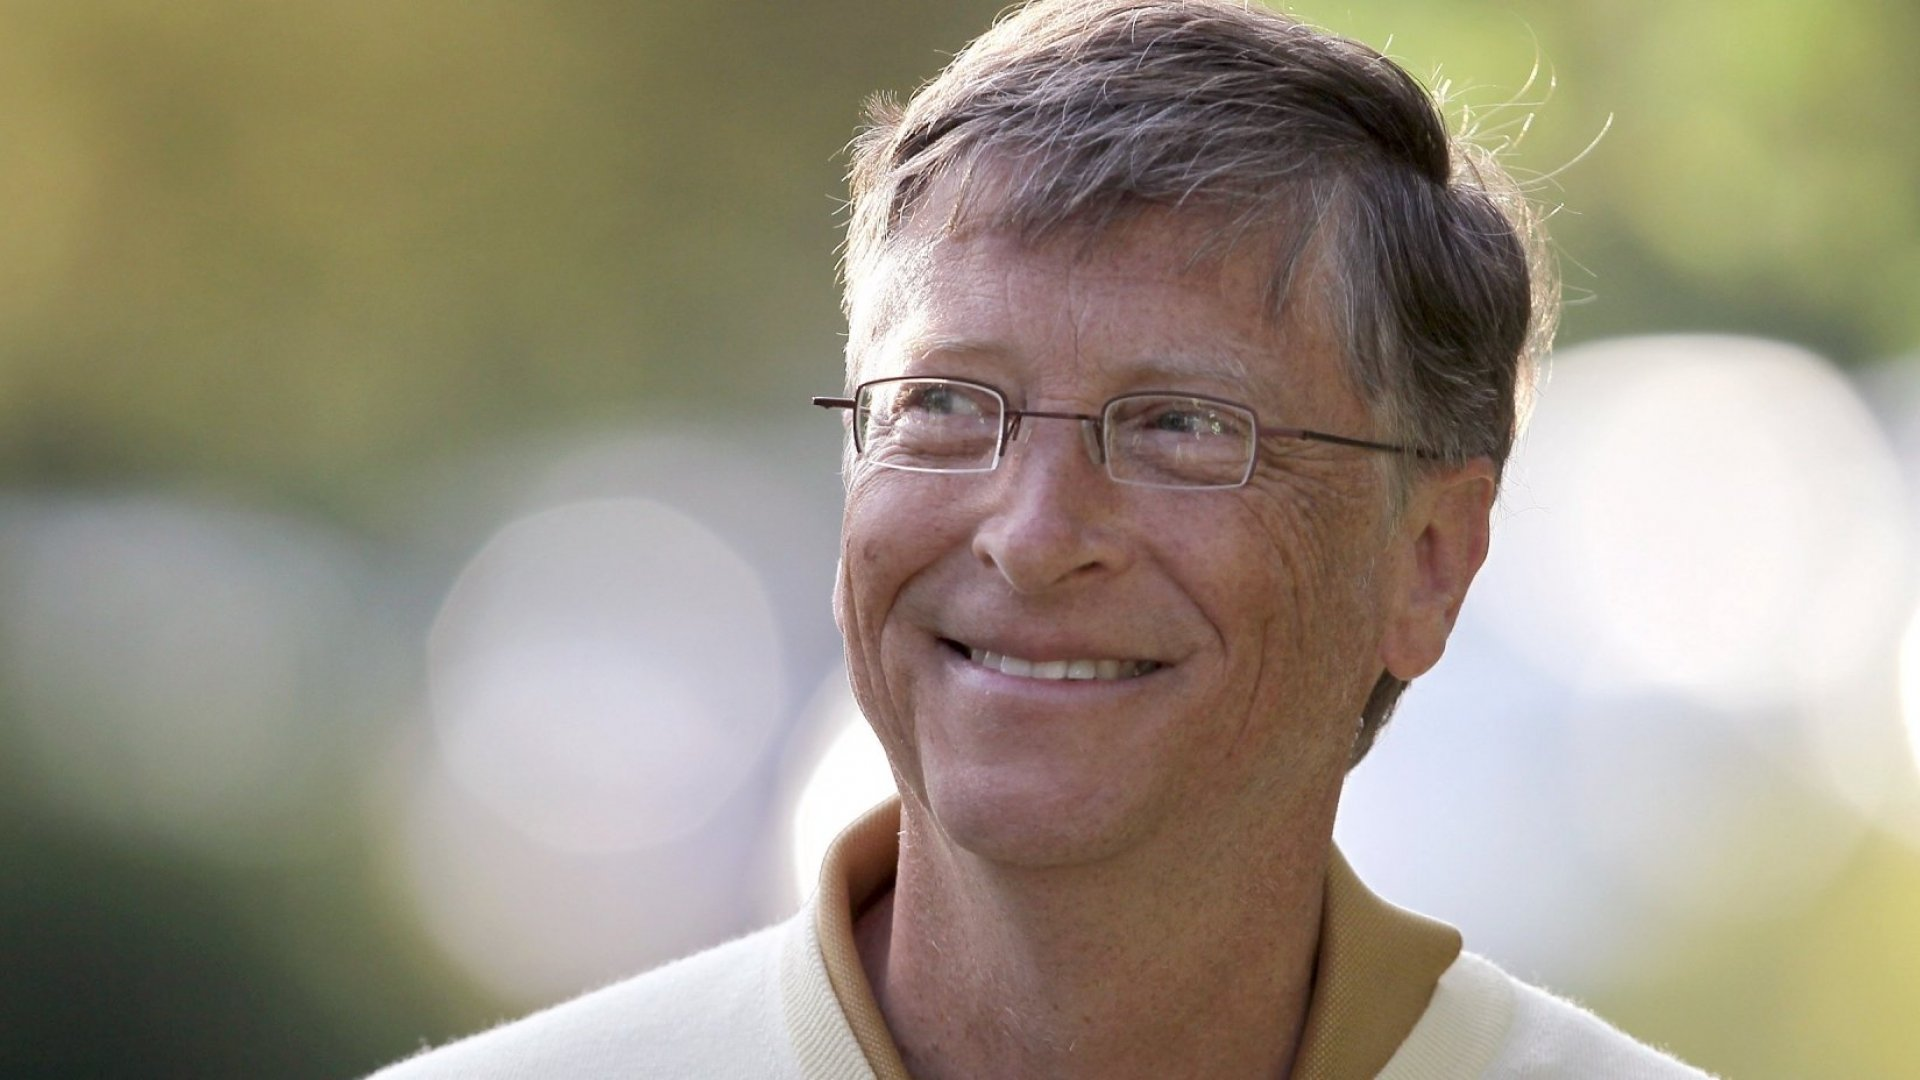 Bill Gates Just Revealed His Biggest Mistake Ever (And It Cost Microsoft a Stunning $400 Billion)